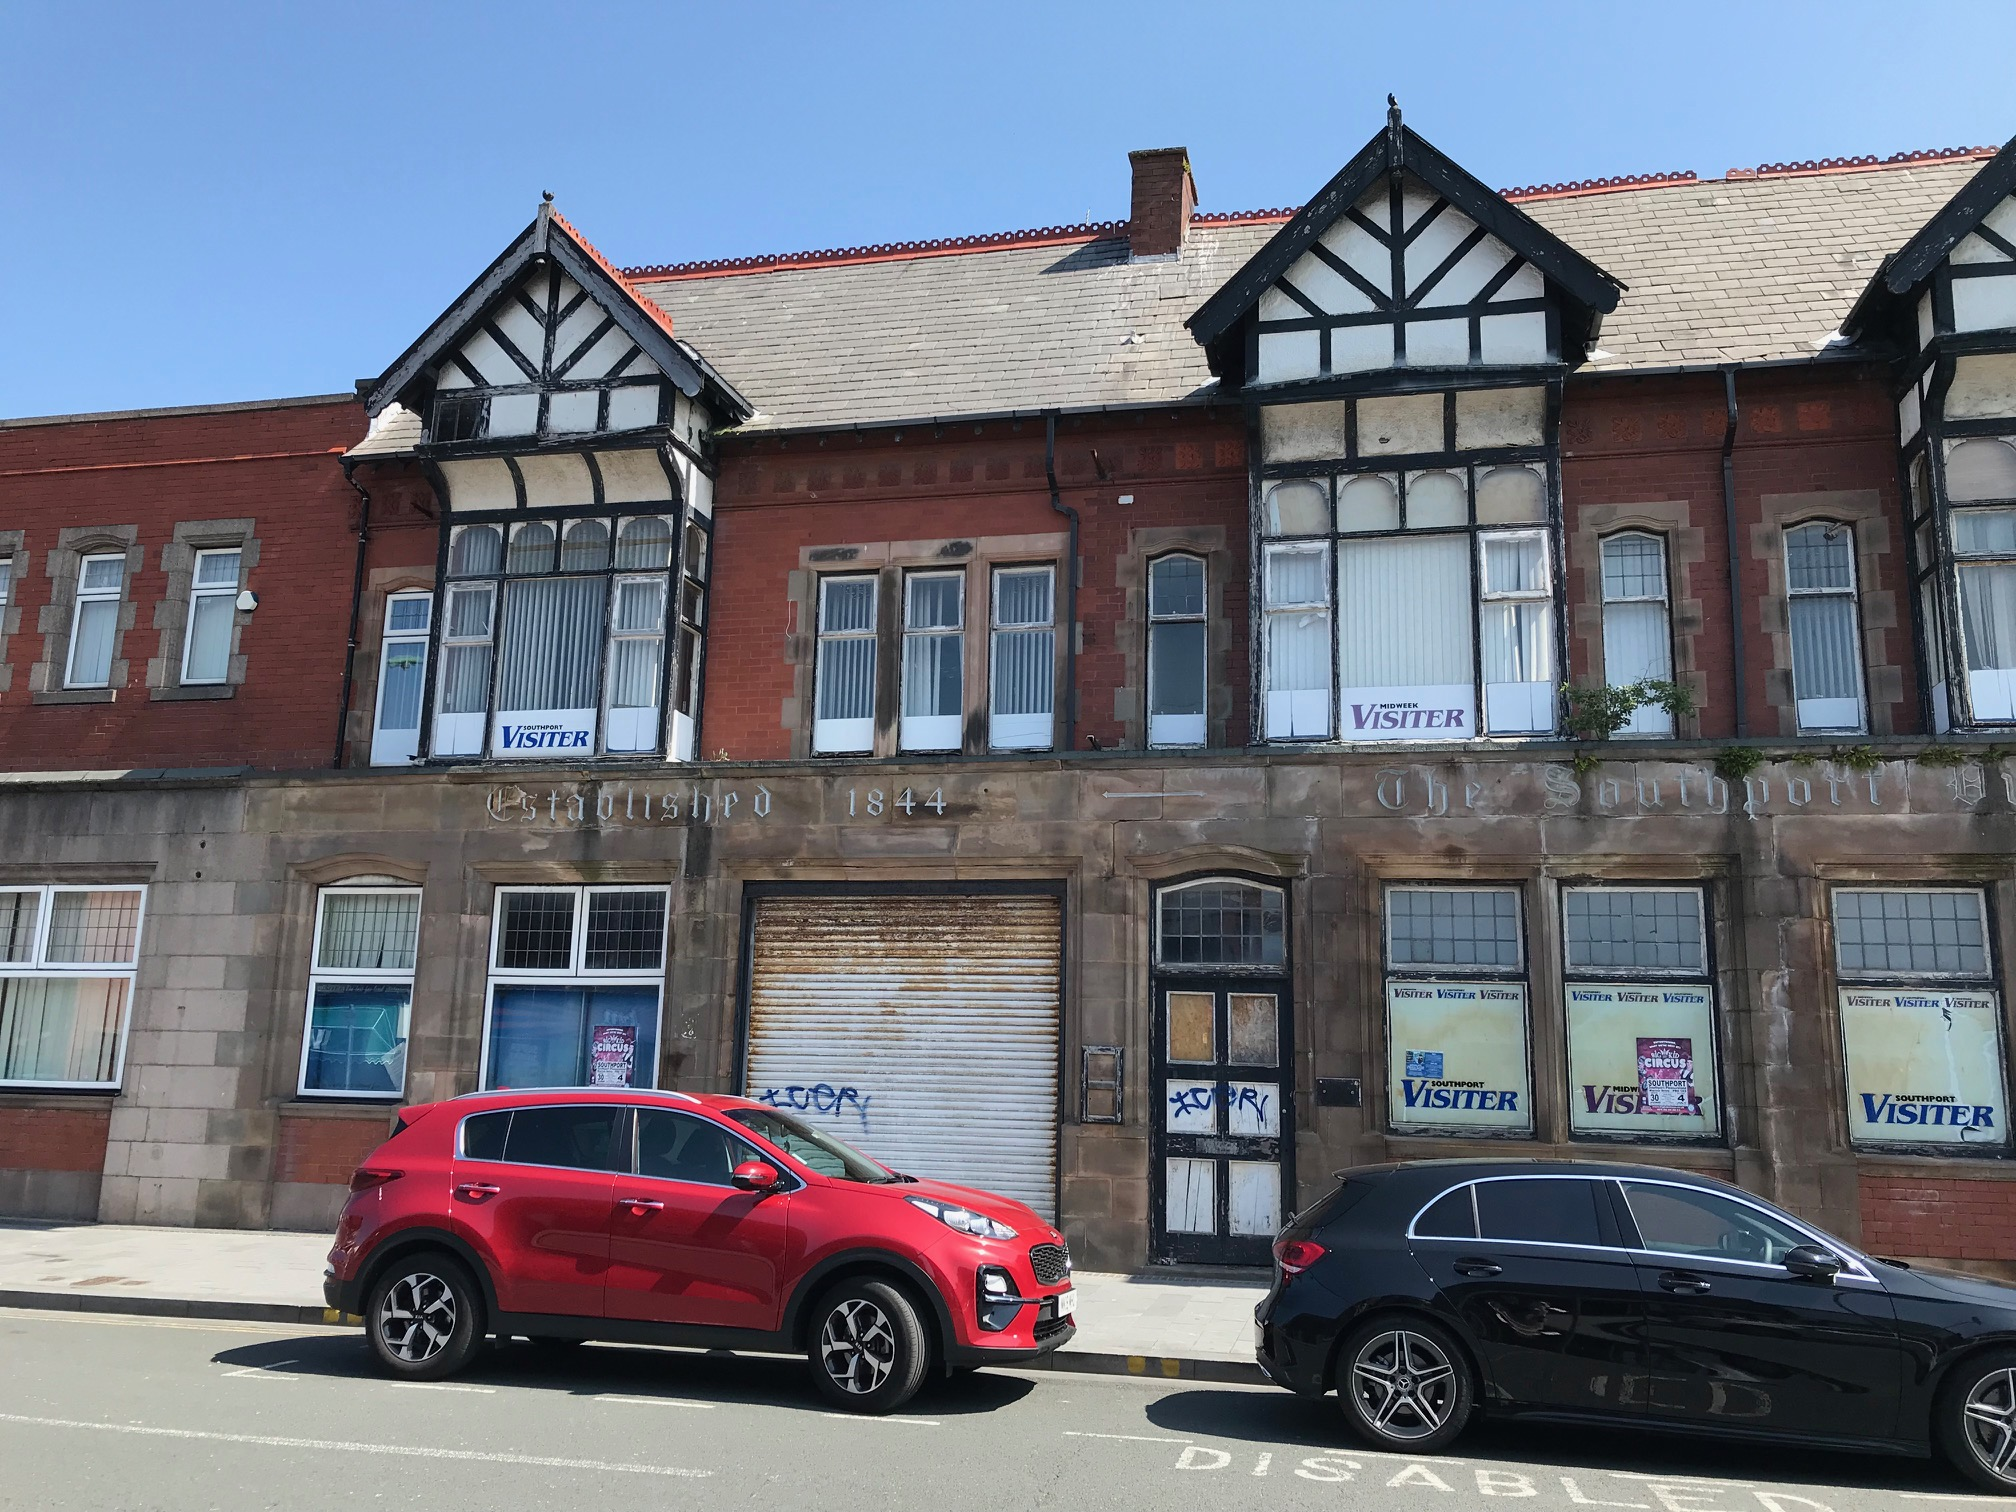 The Southport Visiter office on Tulketh Street in Southport. Photo by Andrew Brown Media